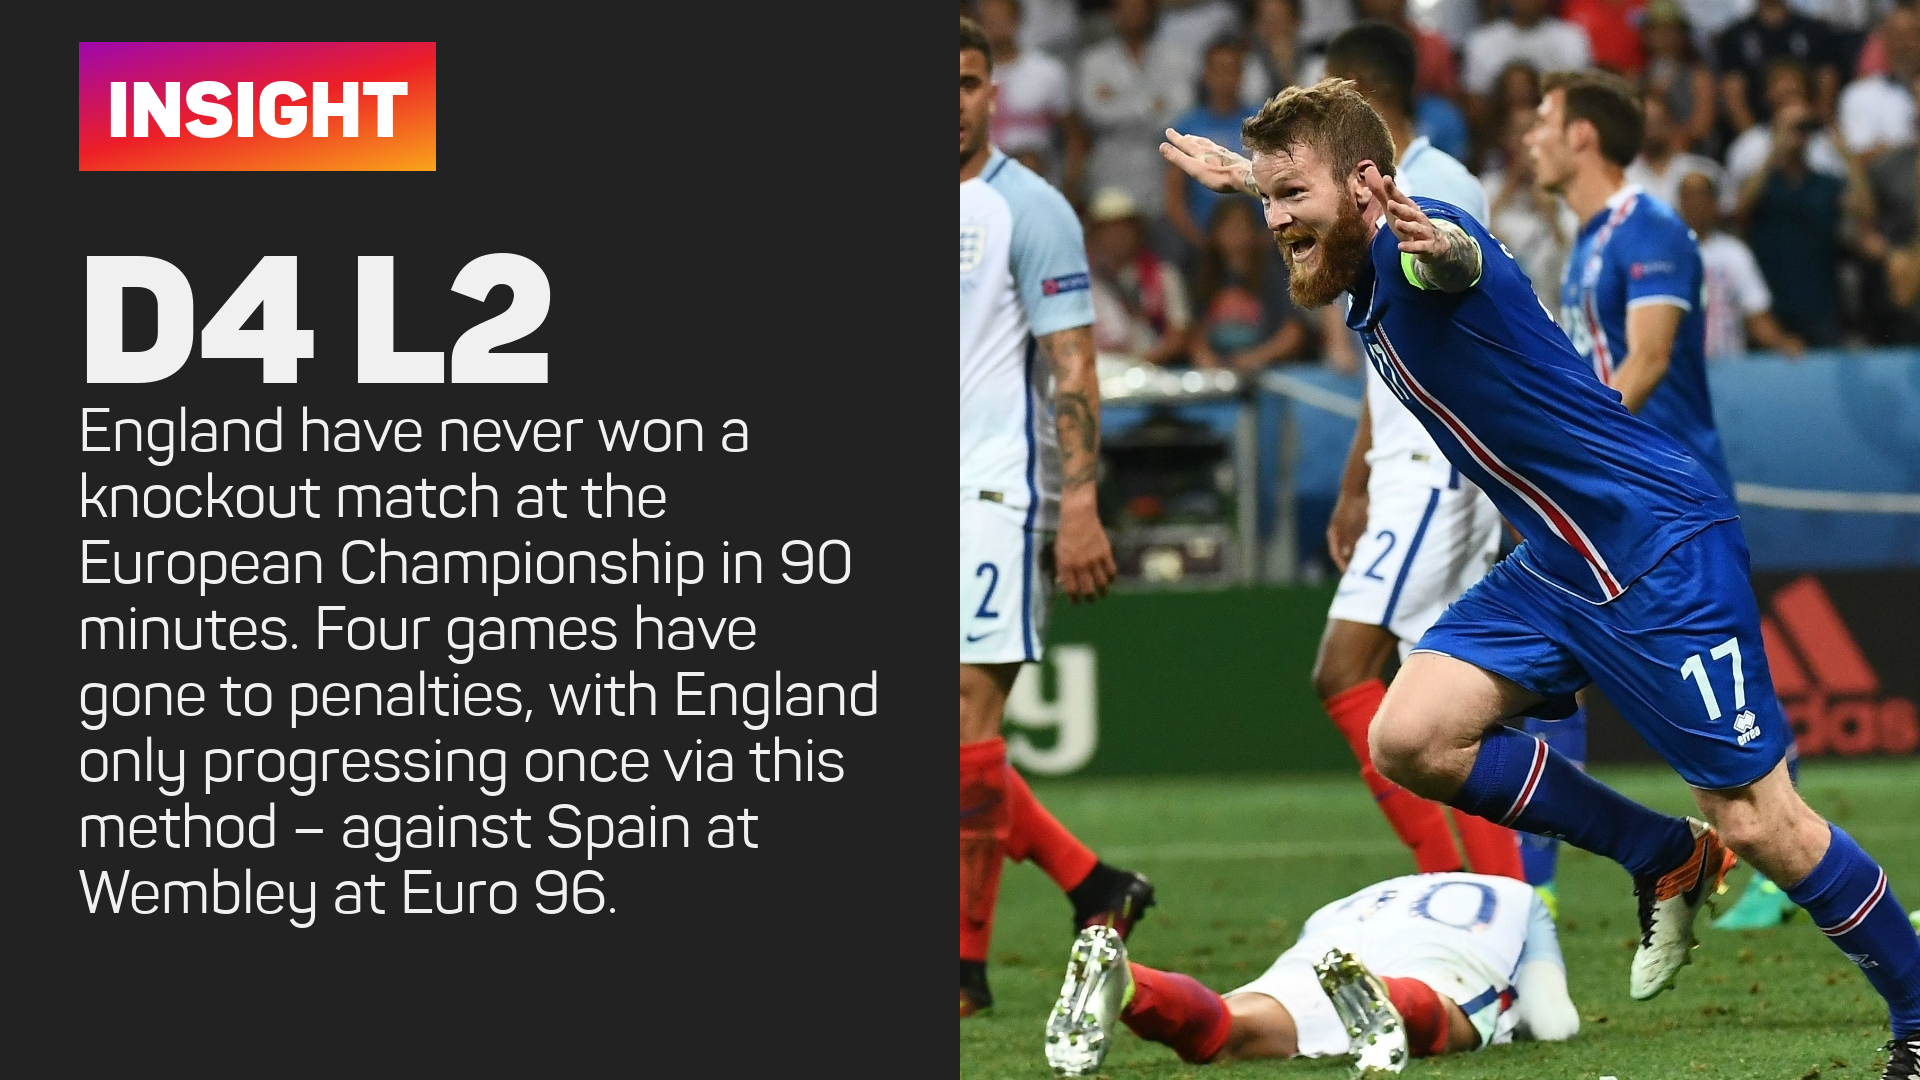 England's knockout record at the Euros